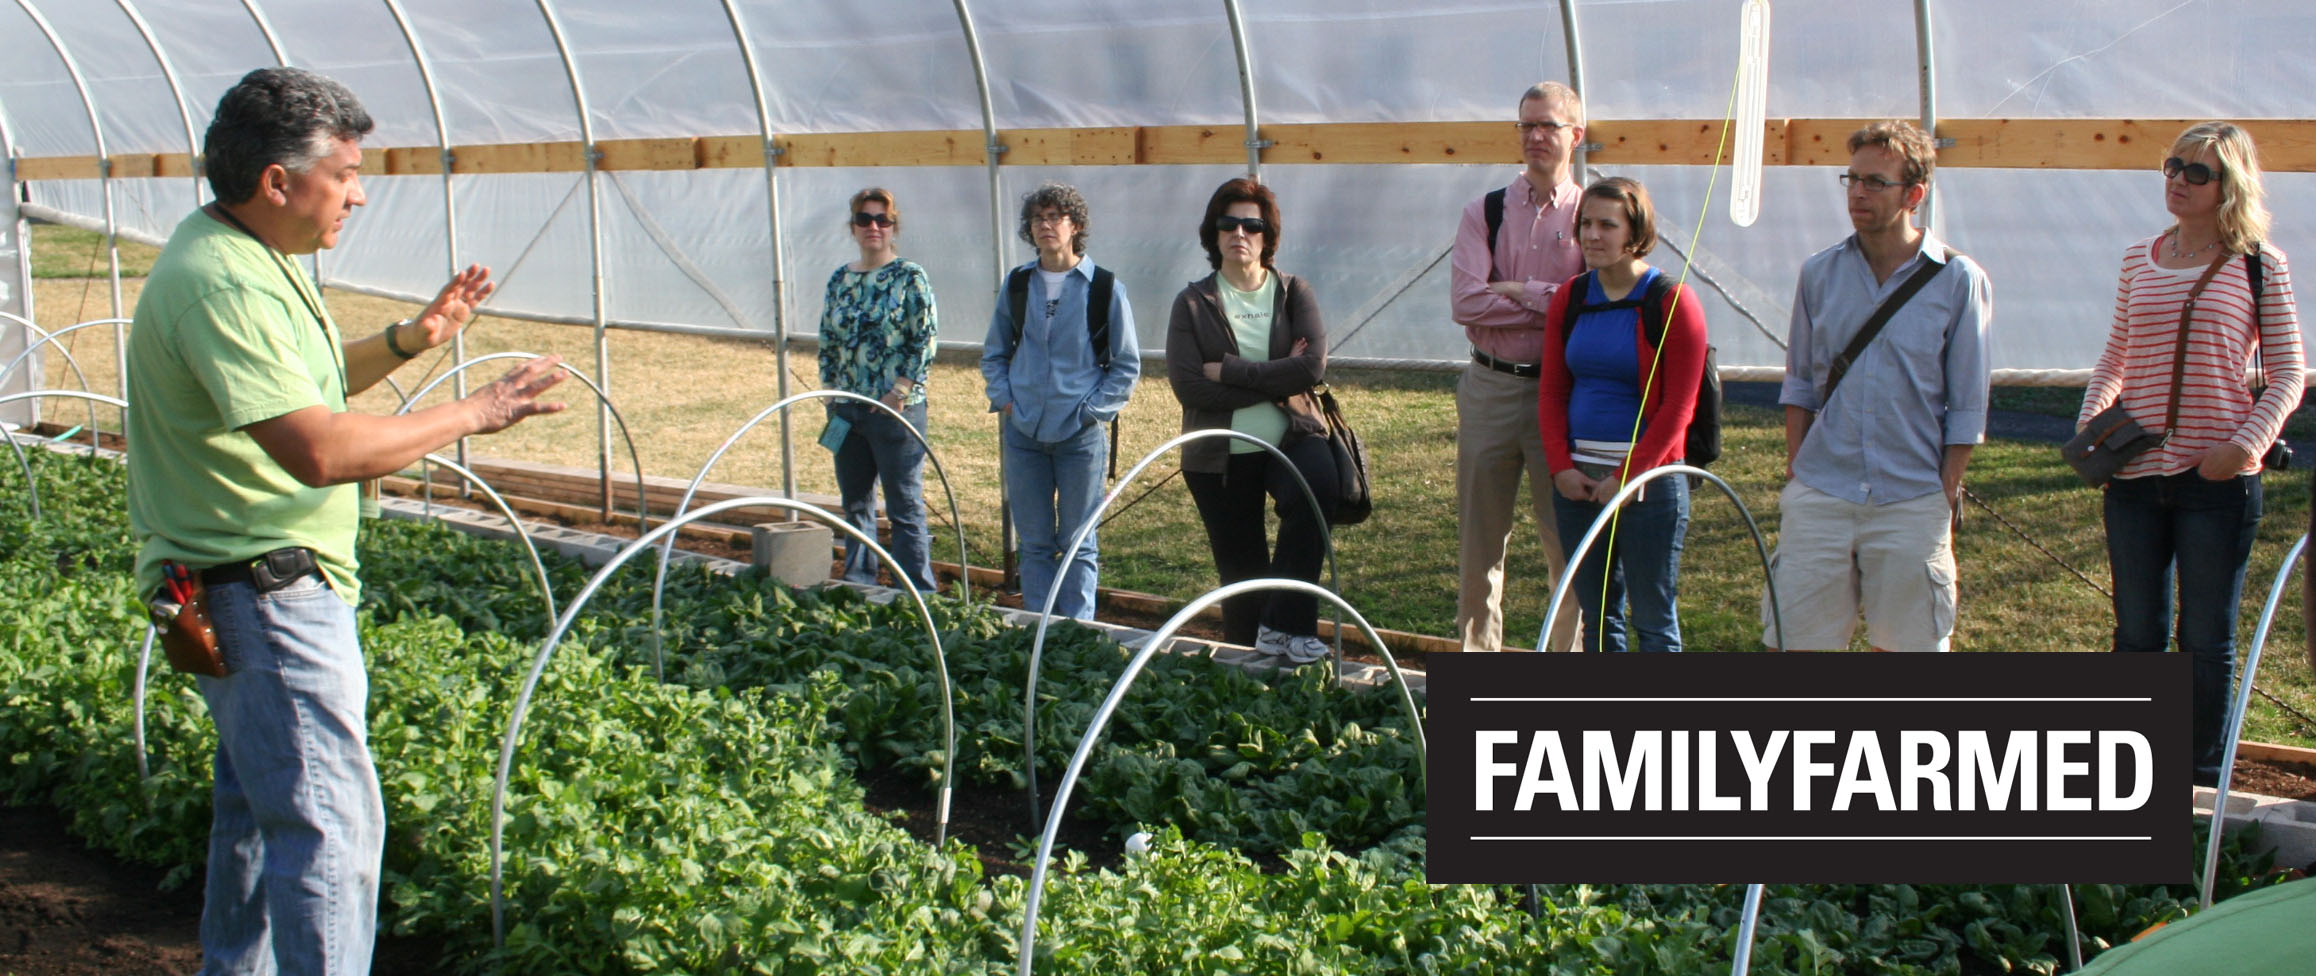 Tickets for FamilyFarmed's Urban Ag Bus Tour in Chicago from ShowClix